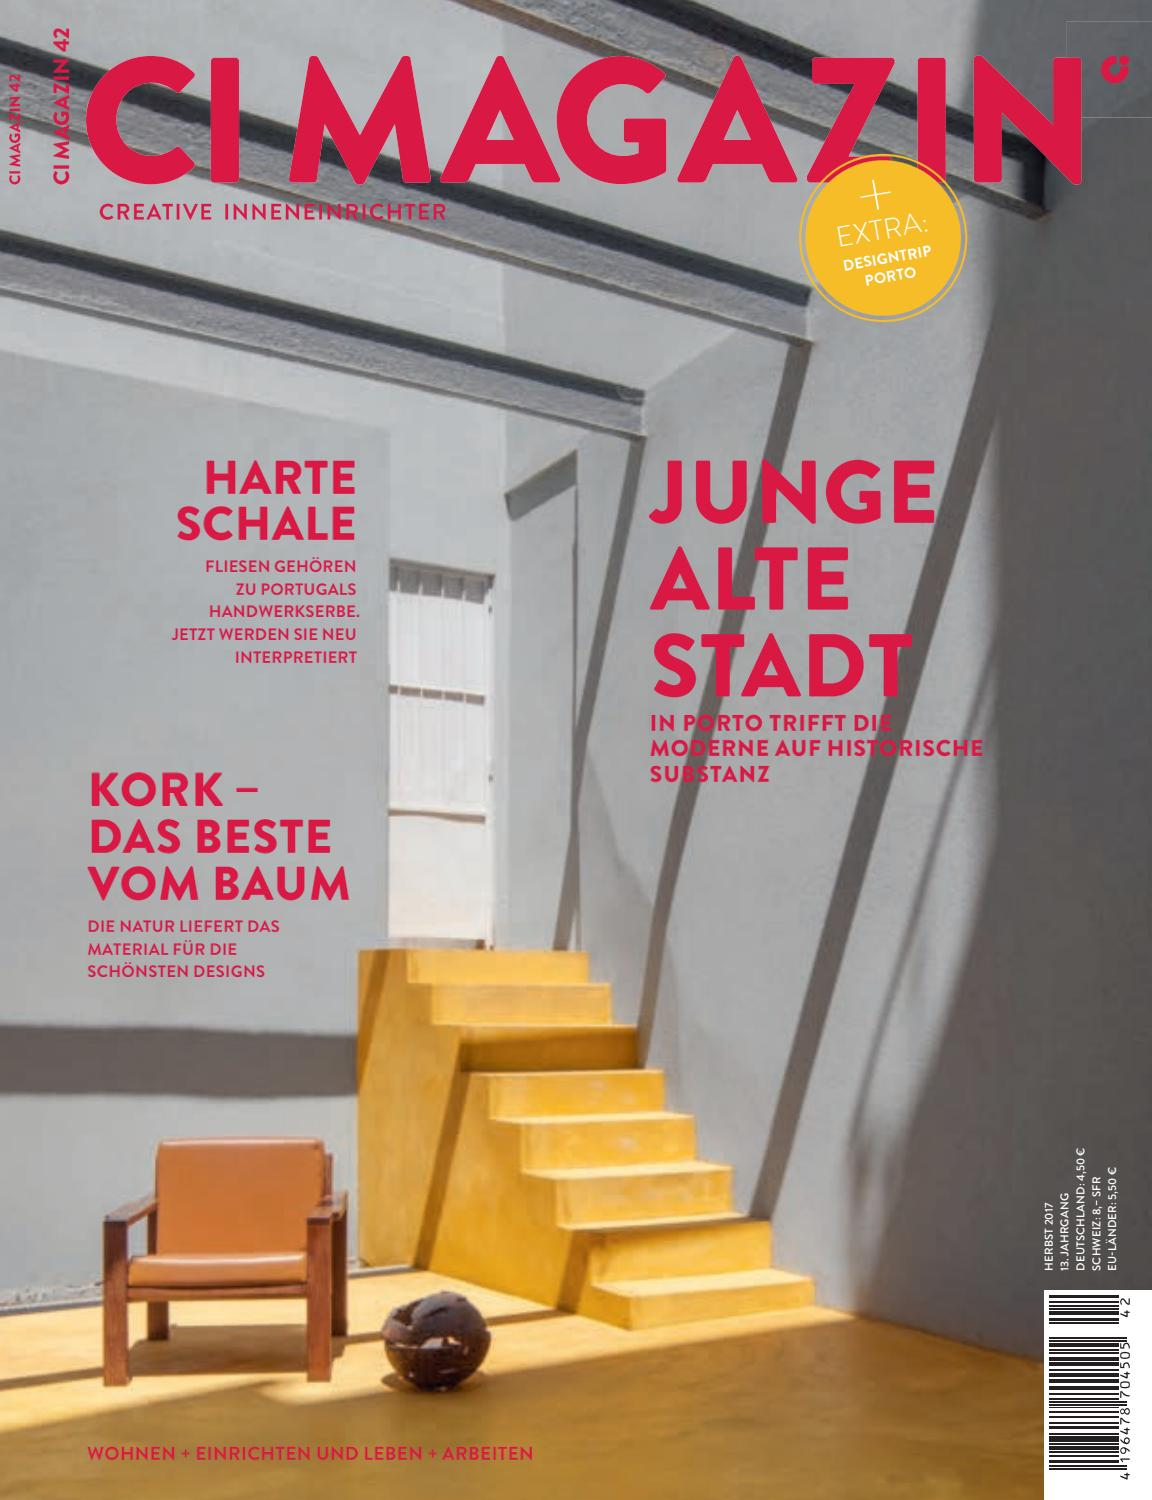 CI-Magazin #42 by Steffen Schmidt - issuu